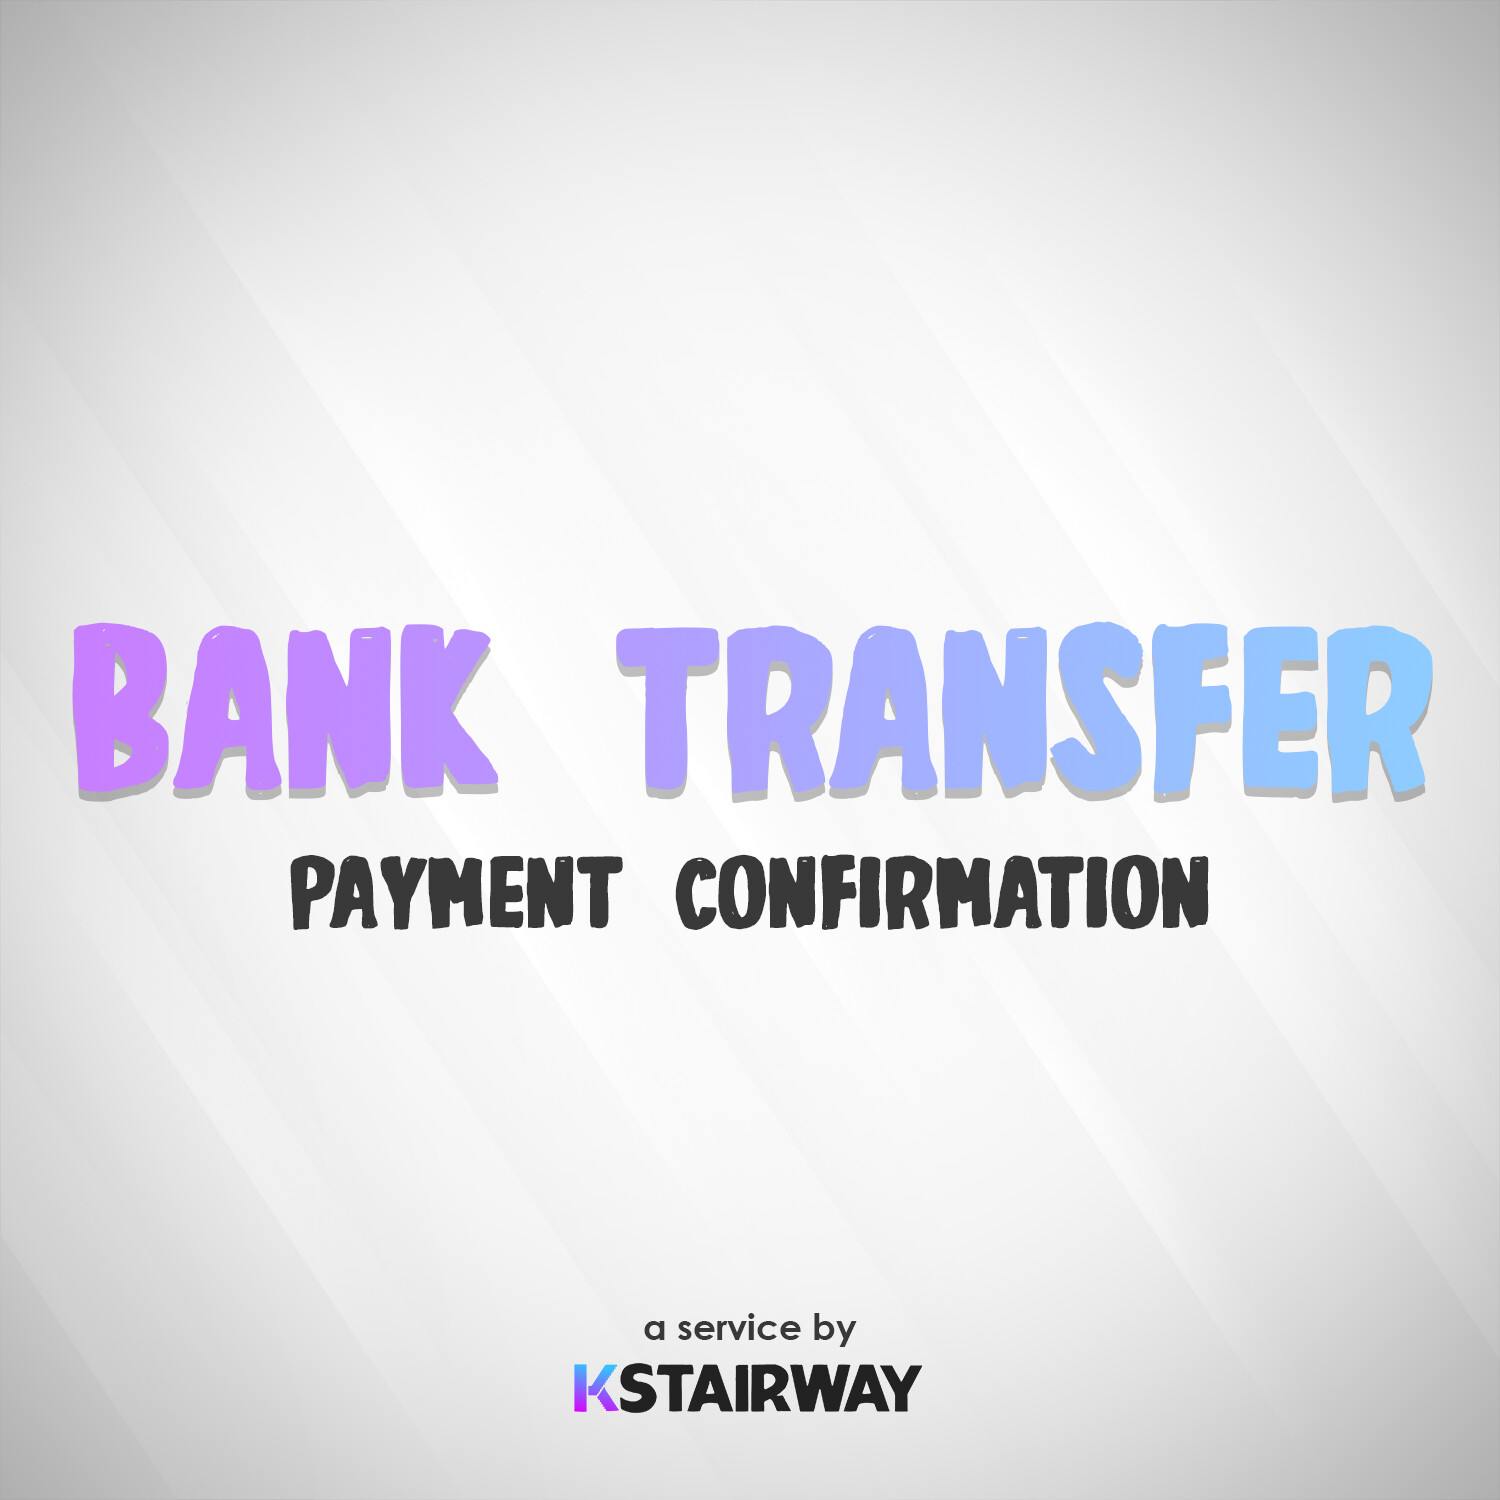 Bank Transfer - Payment Confirmation